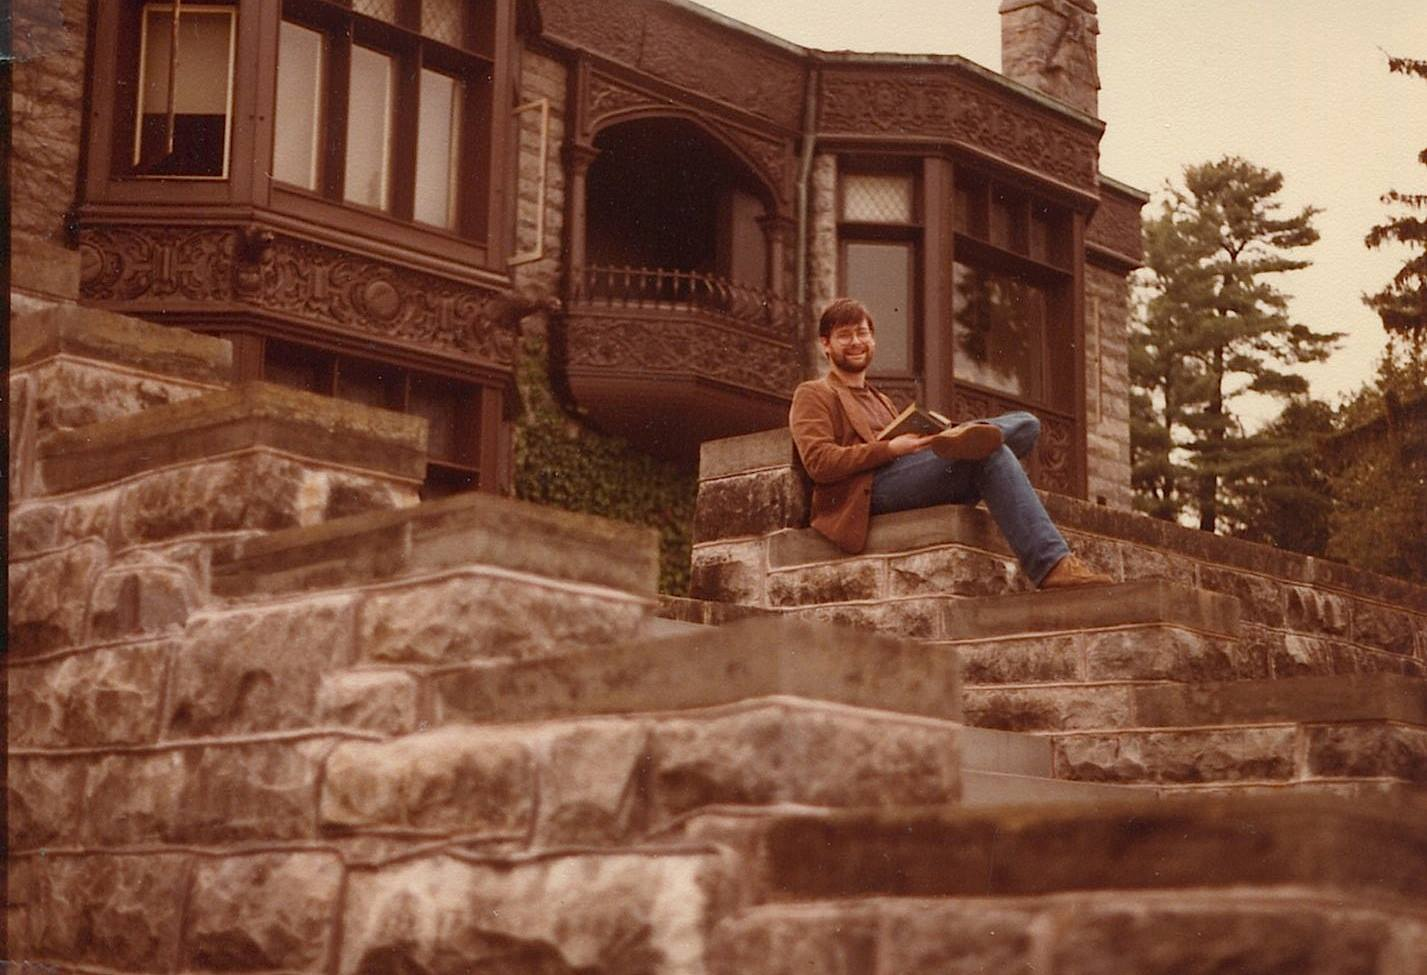 Daron Hagen at Yaddo. Summer, 1984. (Photo Credit: Hortense Calisher)